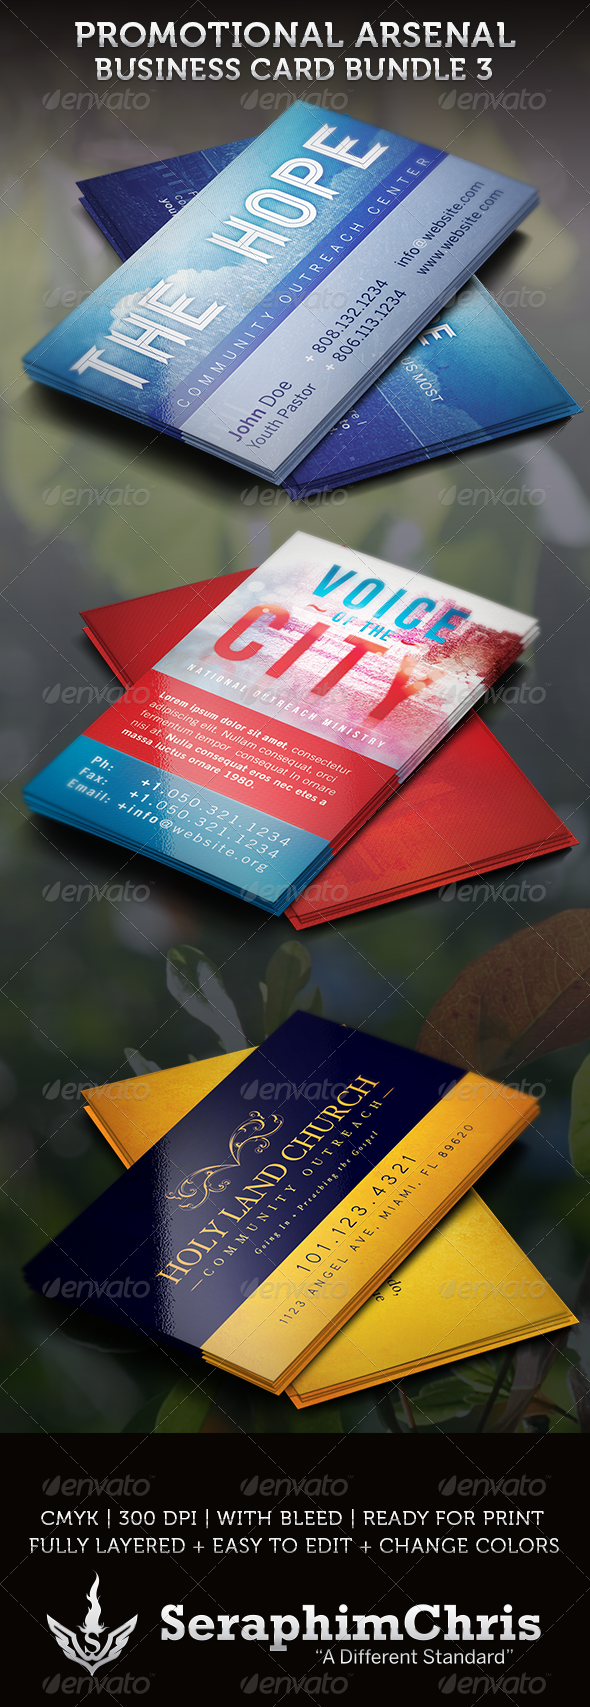 Promotional arsenal business card bundle 3 business cards this promotional arsenal business card bundle 3 is compiled to give you a great value with 4 distinct for churches and evangelic outreach colourmoves